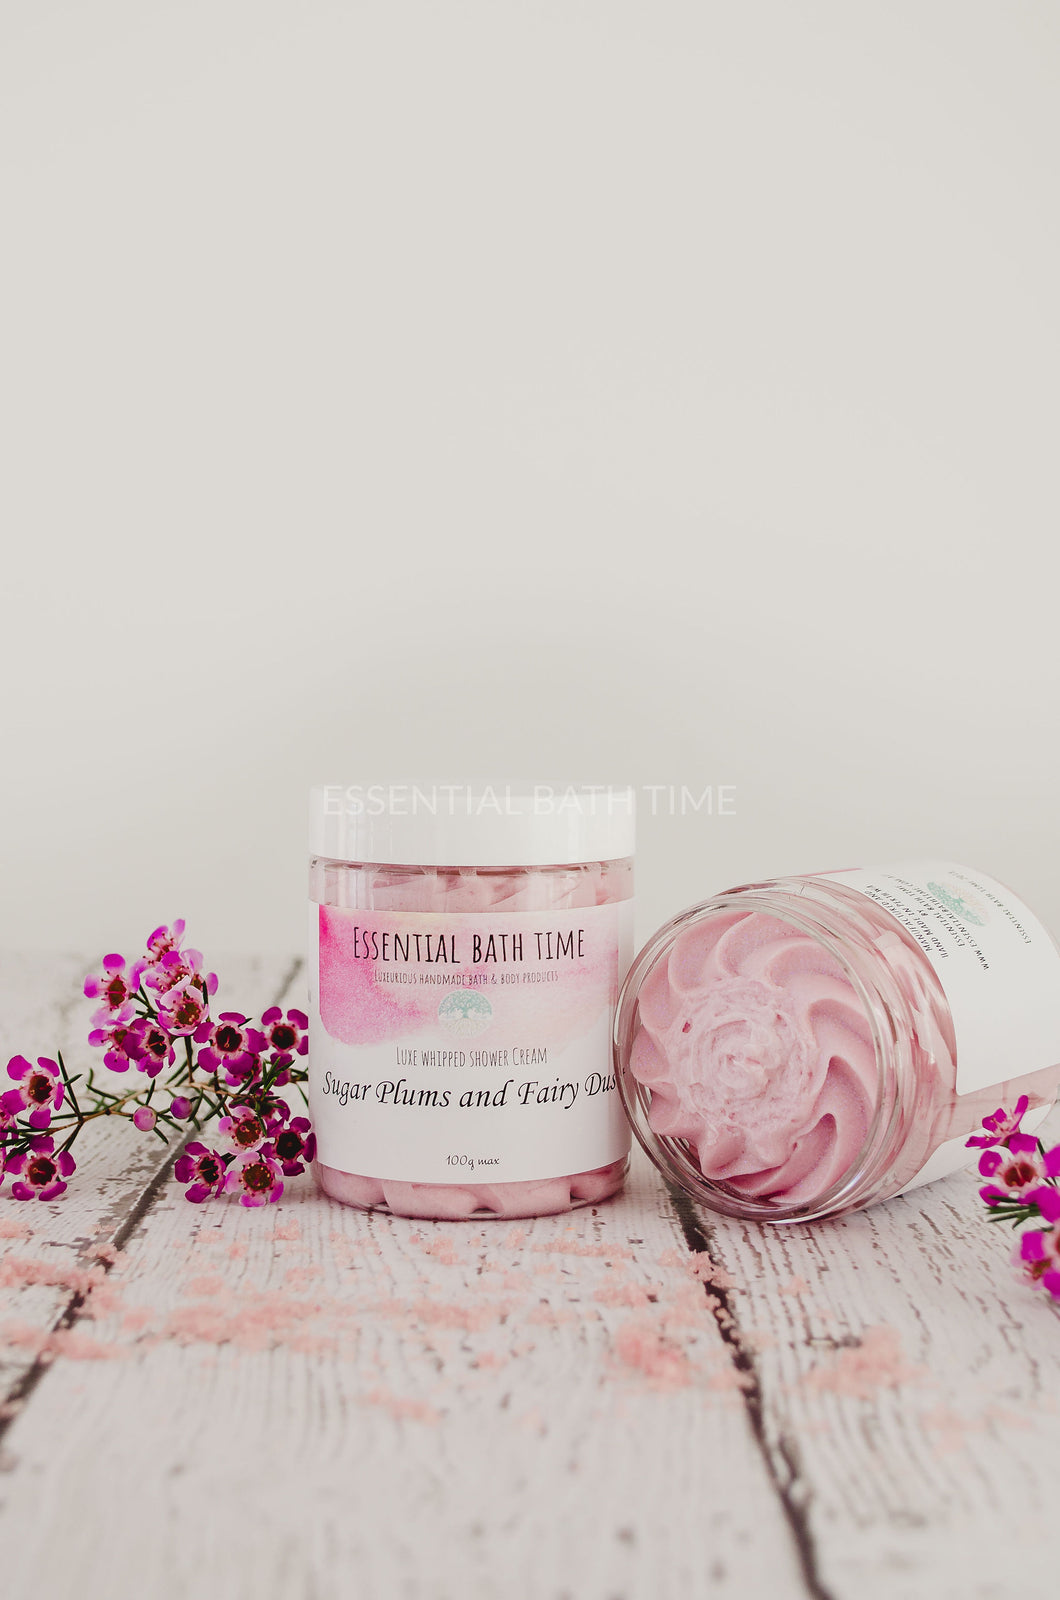 Sugar plums and Fairy Dust Bath and shower whipped Soap Cream.whipped soapEssential bath time